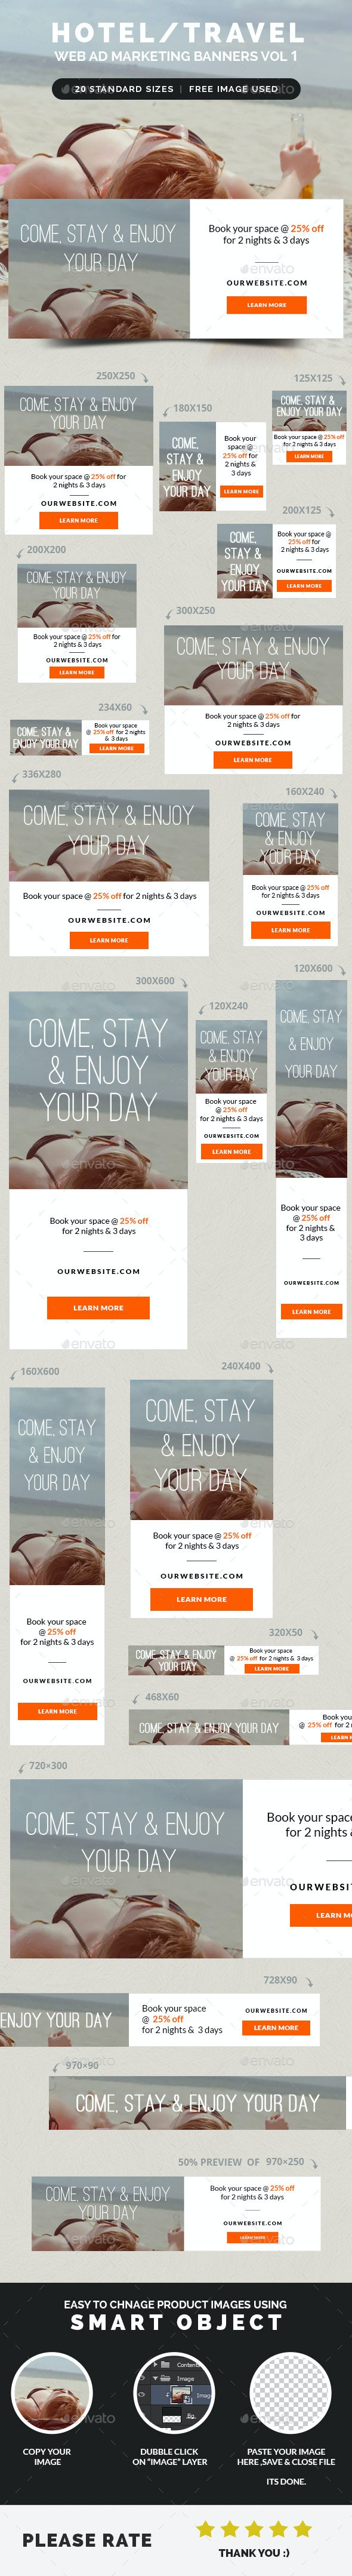 Hotel / Travel Web Ad Marketing Banners Vol 1 - Banners & Ads Web Elements